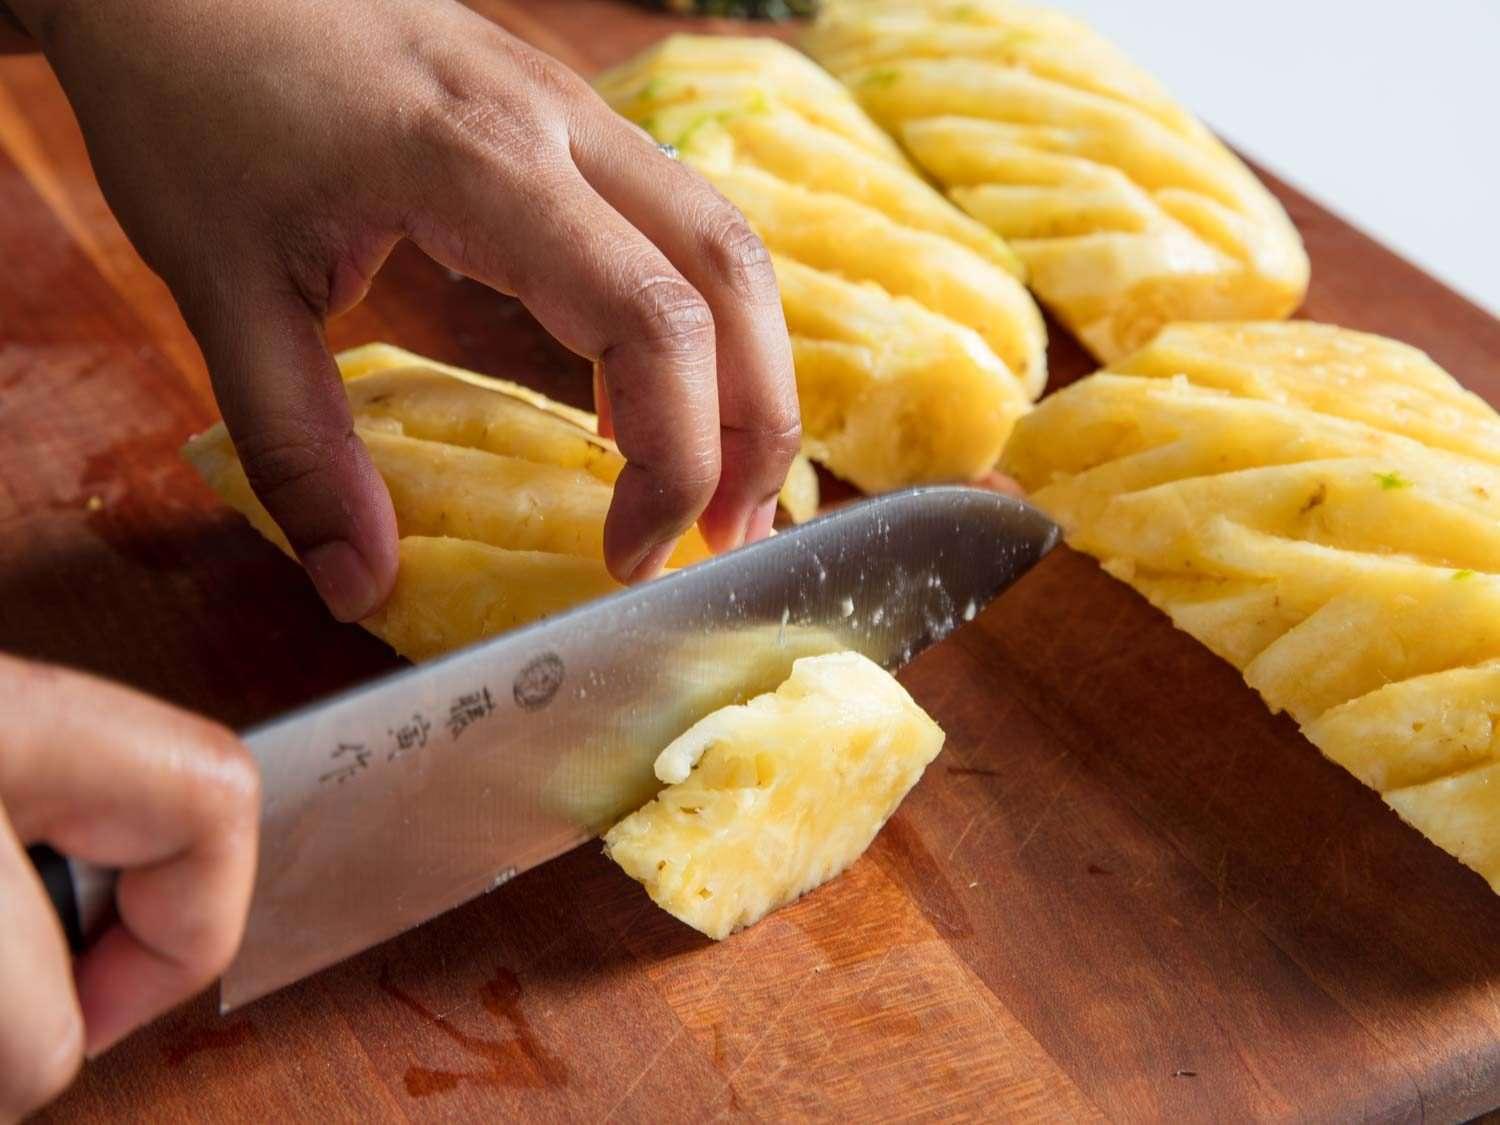 A knife cutting slices of a pineapple.